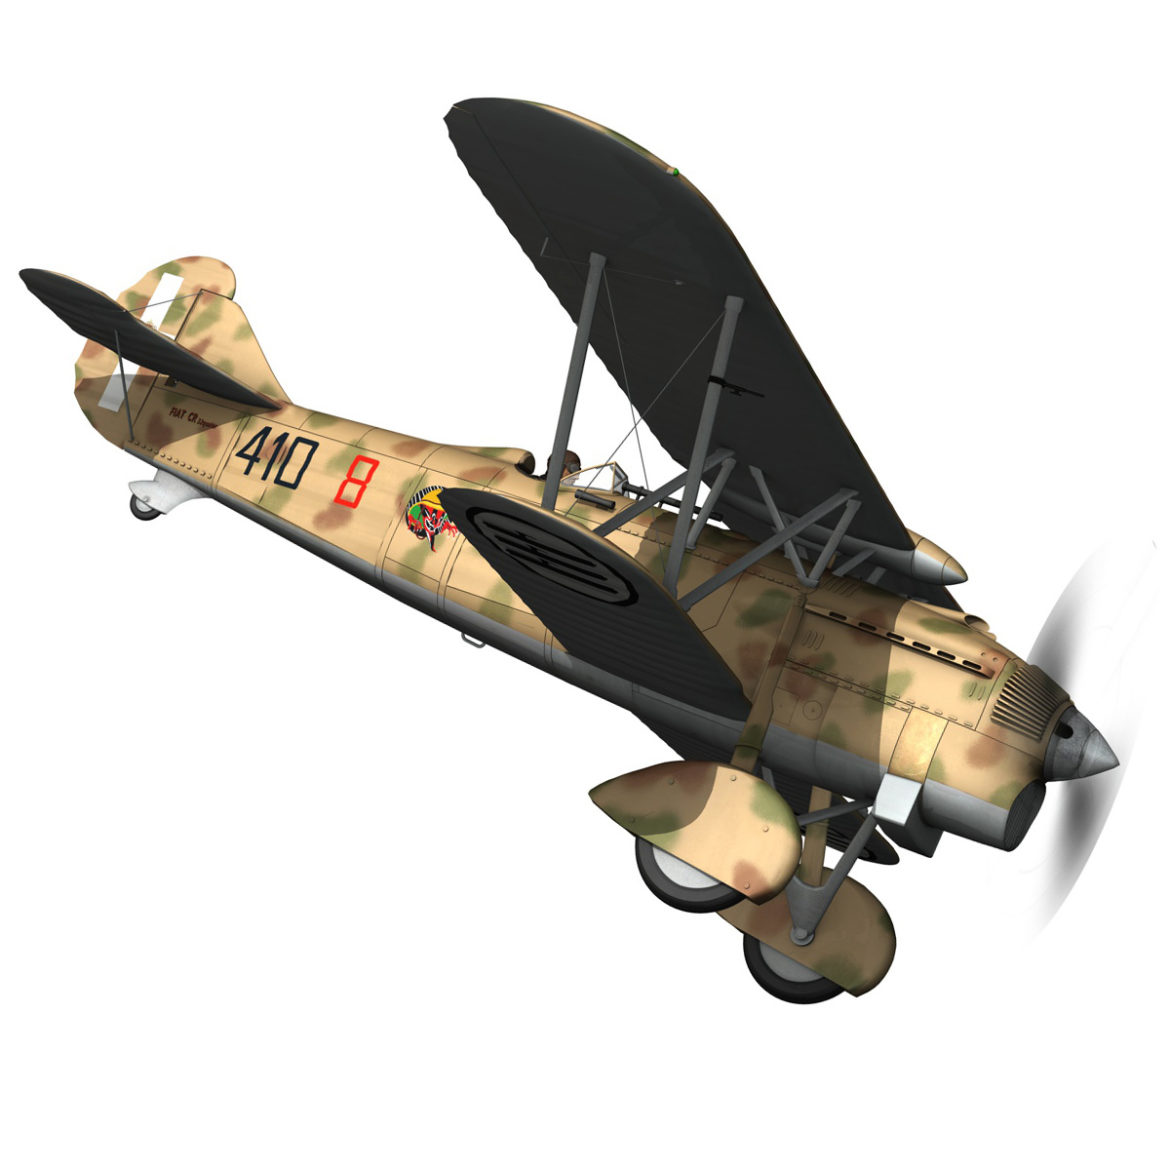 fiat cr.32 – italy airforce – 410 squadriglia 3d model fbx c4d lwo obj 307547